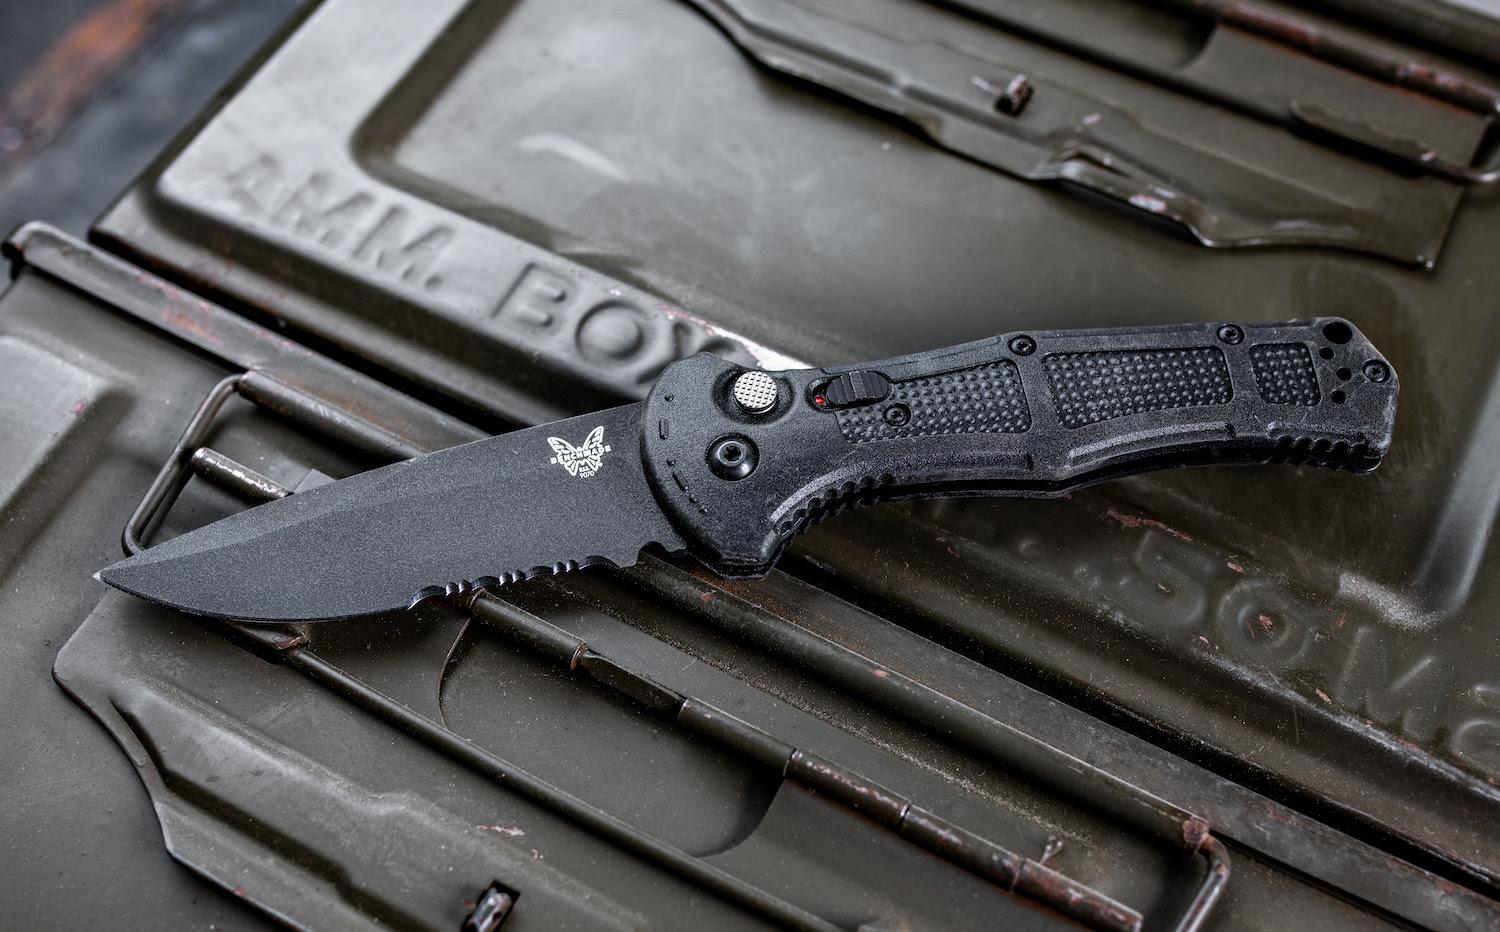 Benchmade Claymore tactical knife